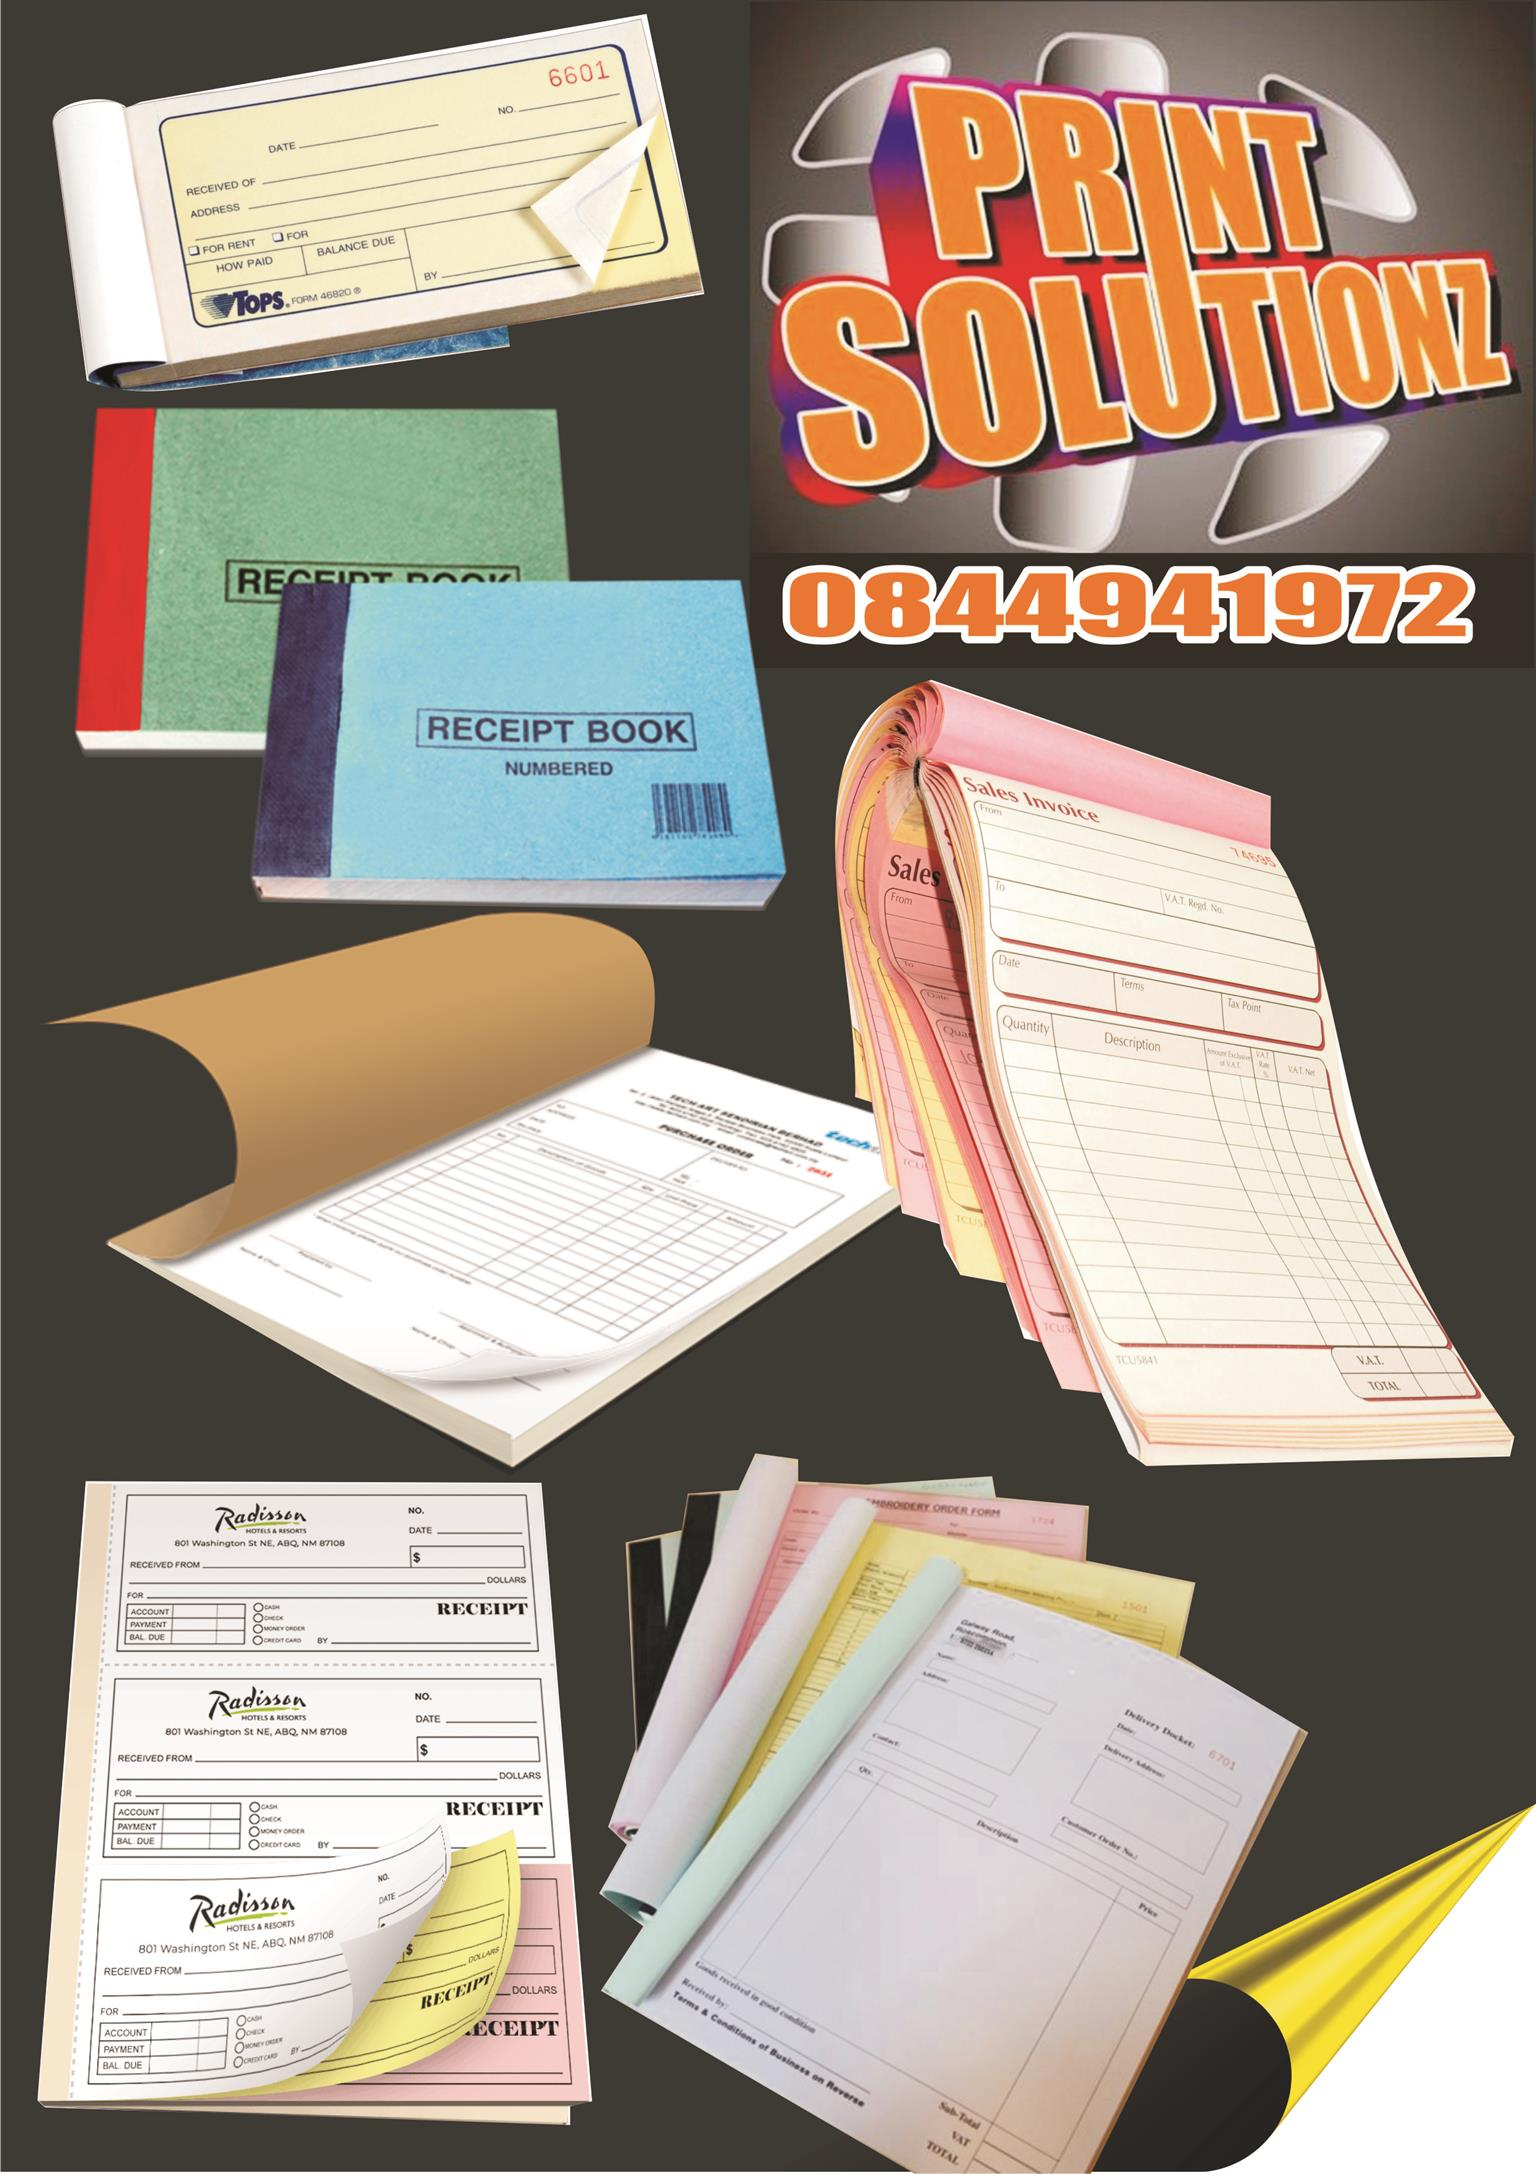 State of the art printers copiers for rent